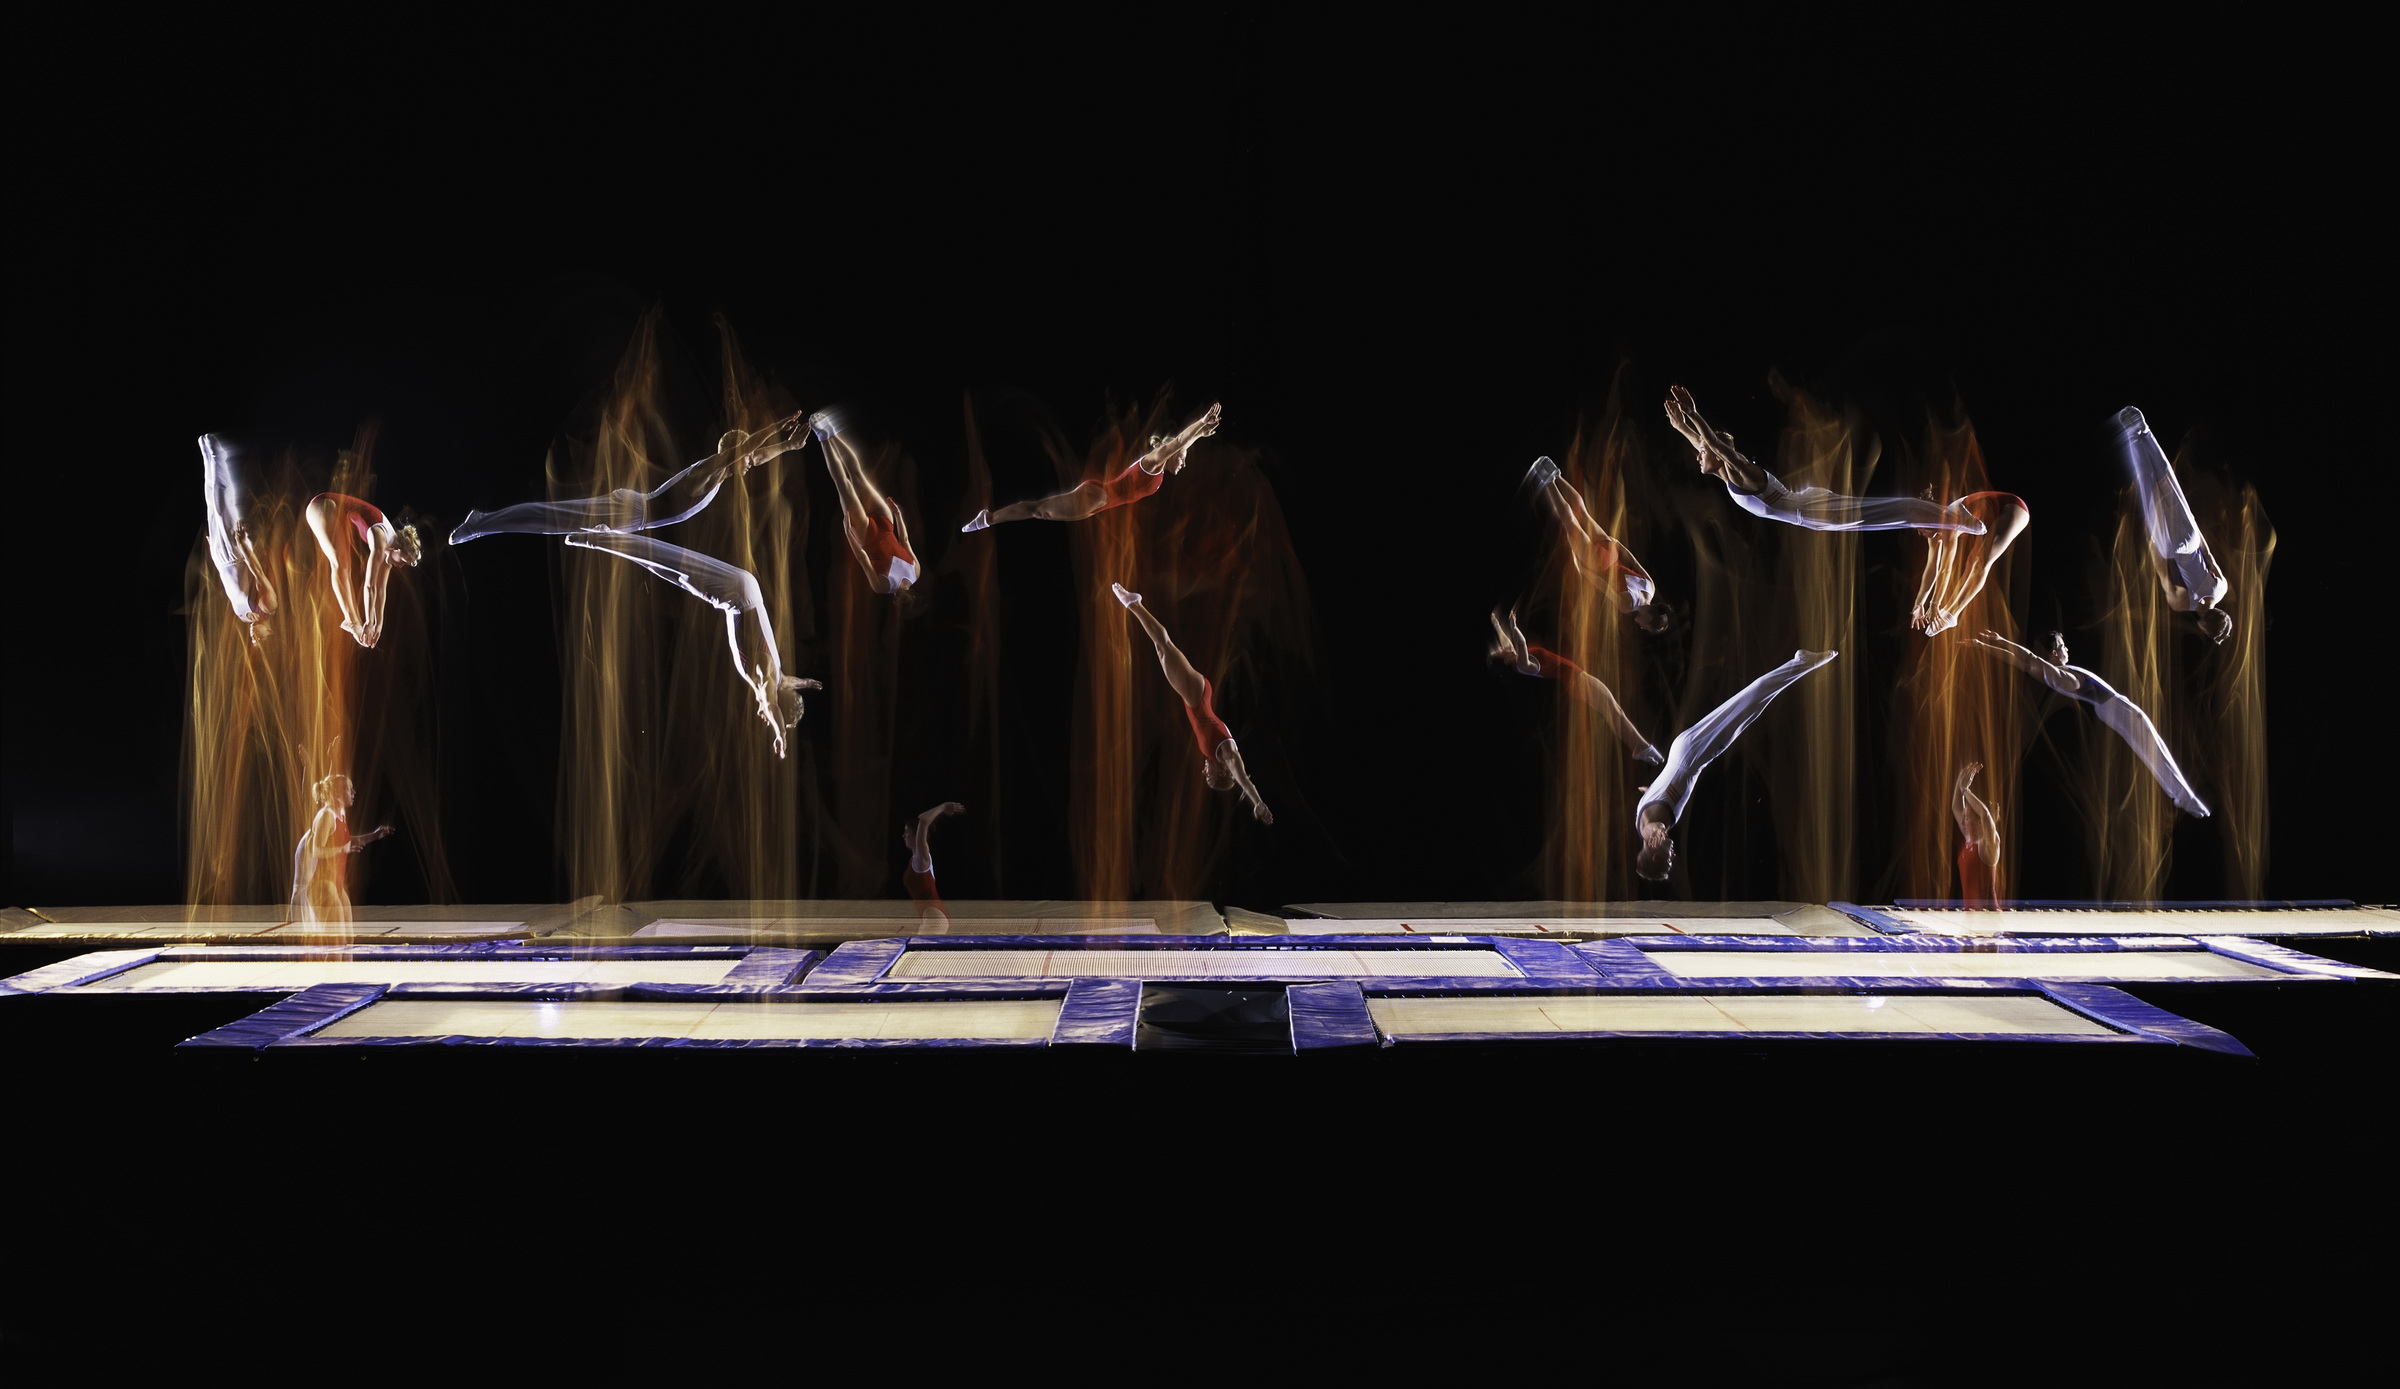 New to the 2000 Olympics, competitors perform compulsory routines on the trampoline. Lubbock, Texas Sports Illustrated 2000 © Joe McNally